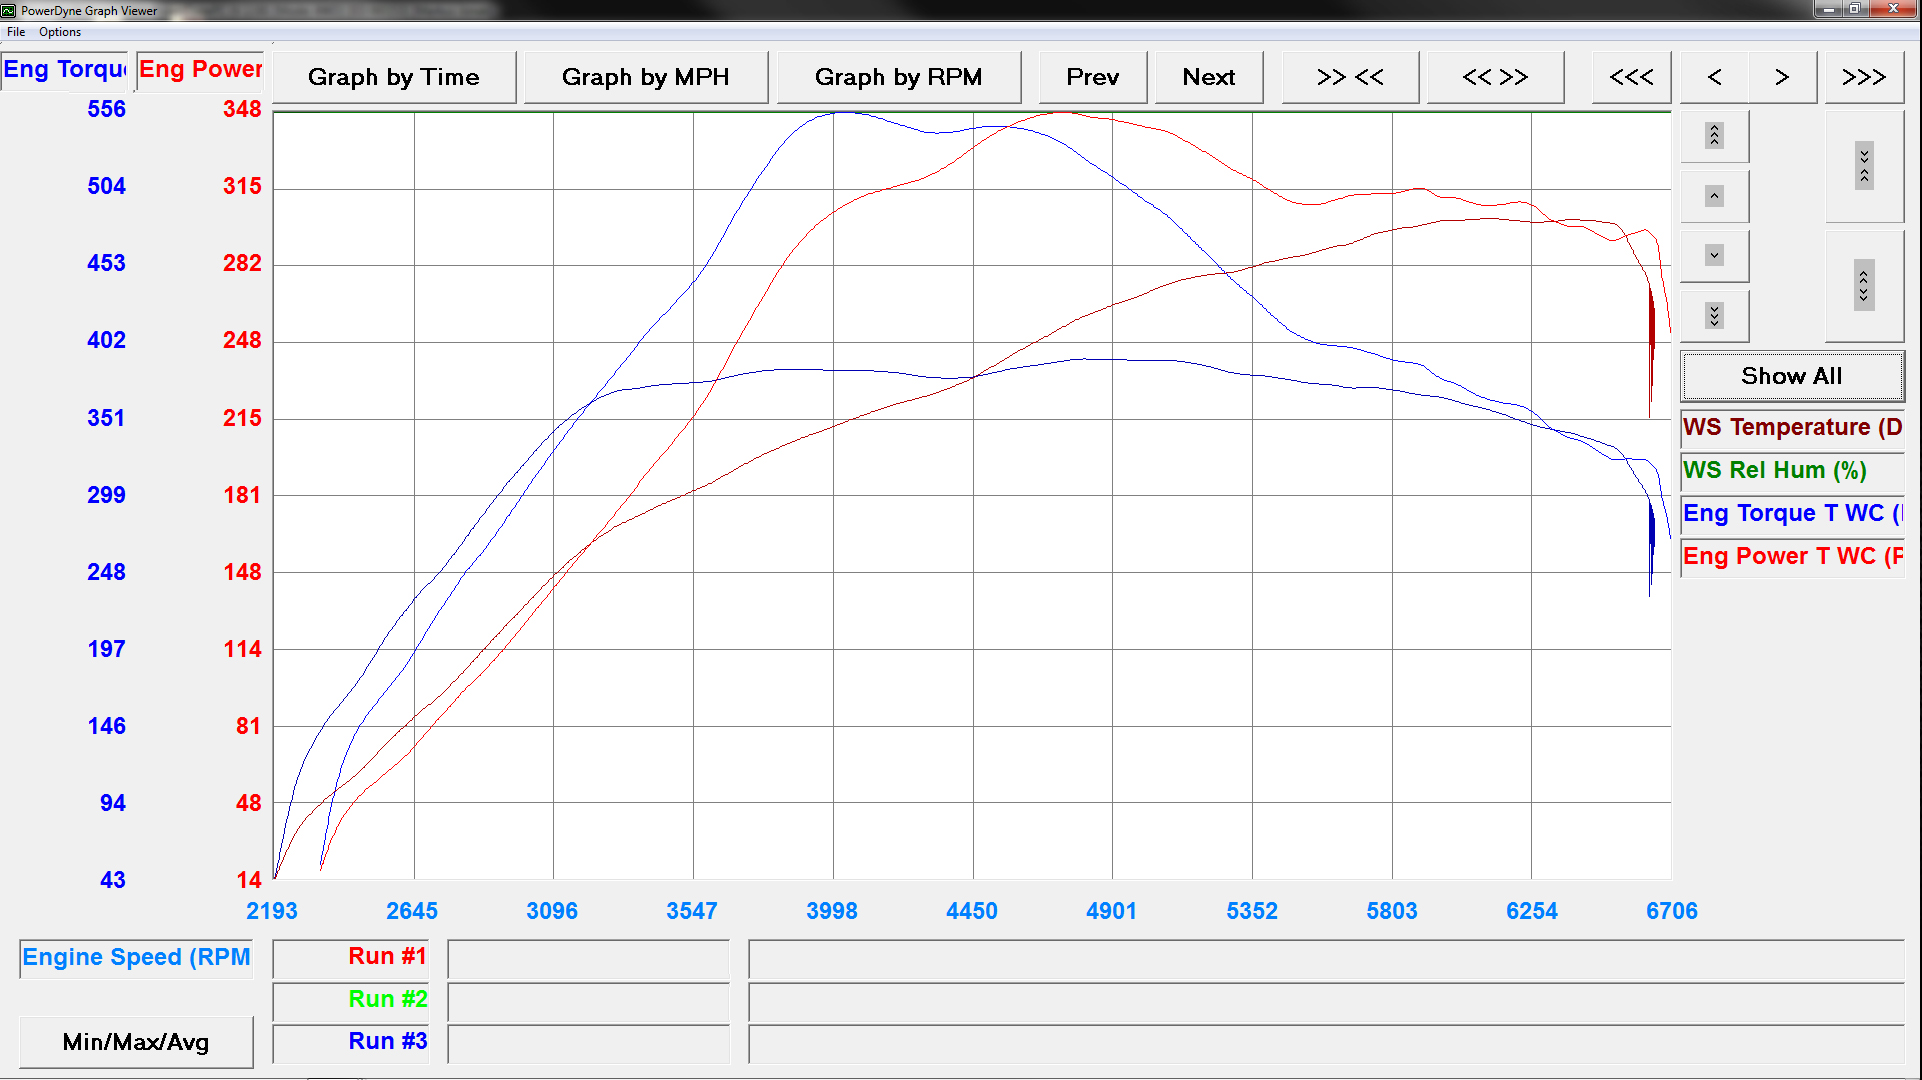 Subaru Impreza Wrx Sti 2011 348ps 556nm Vmax Engine Diagram We Can See On This The Huge Difference In Middle Rpm Range Which Is Given By 15 Bars Of Boost Car Equipped With 3 Inch Down Pipe